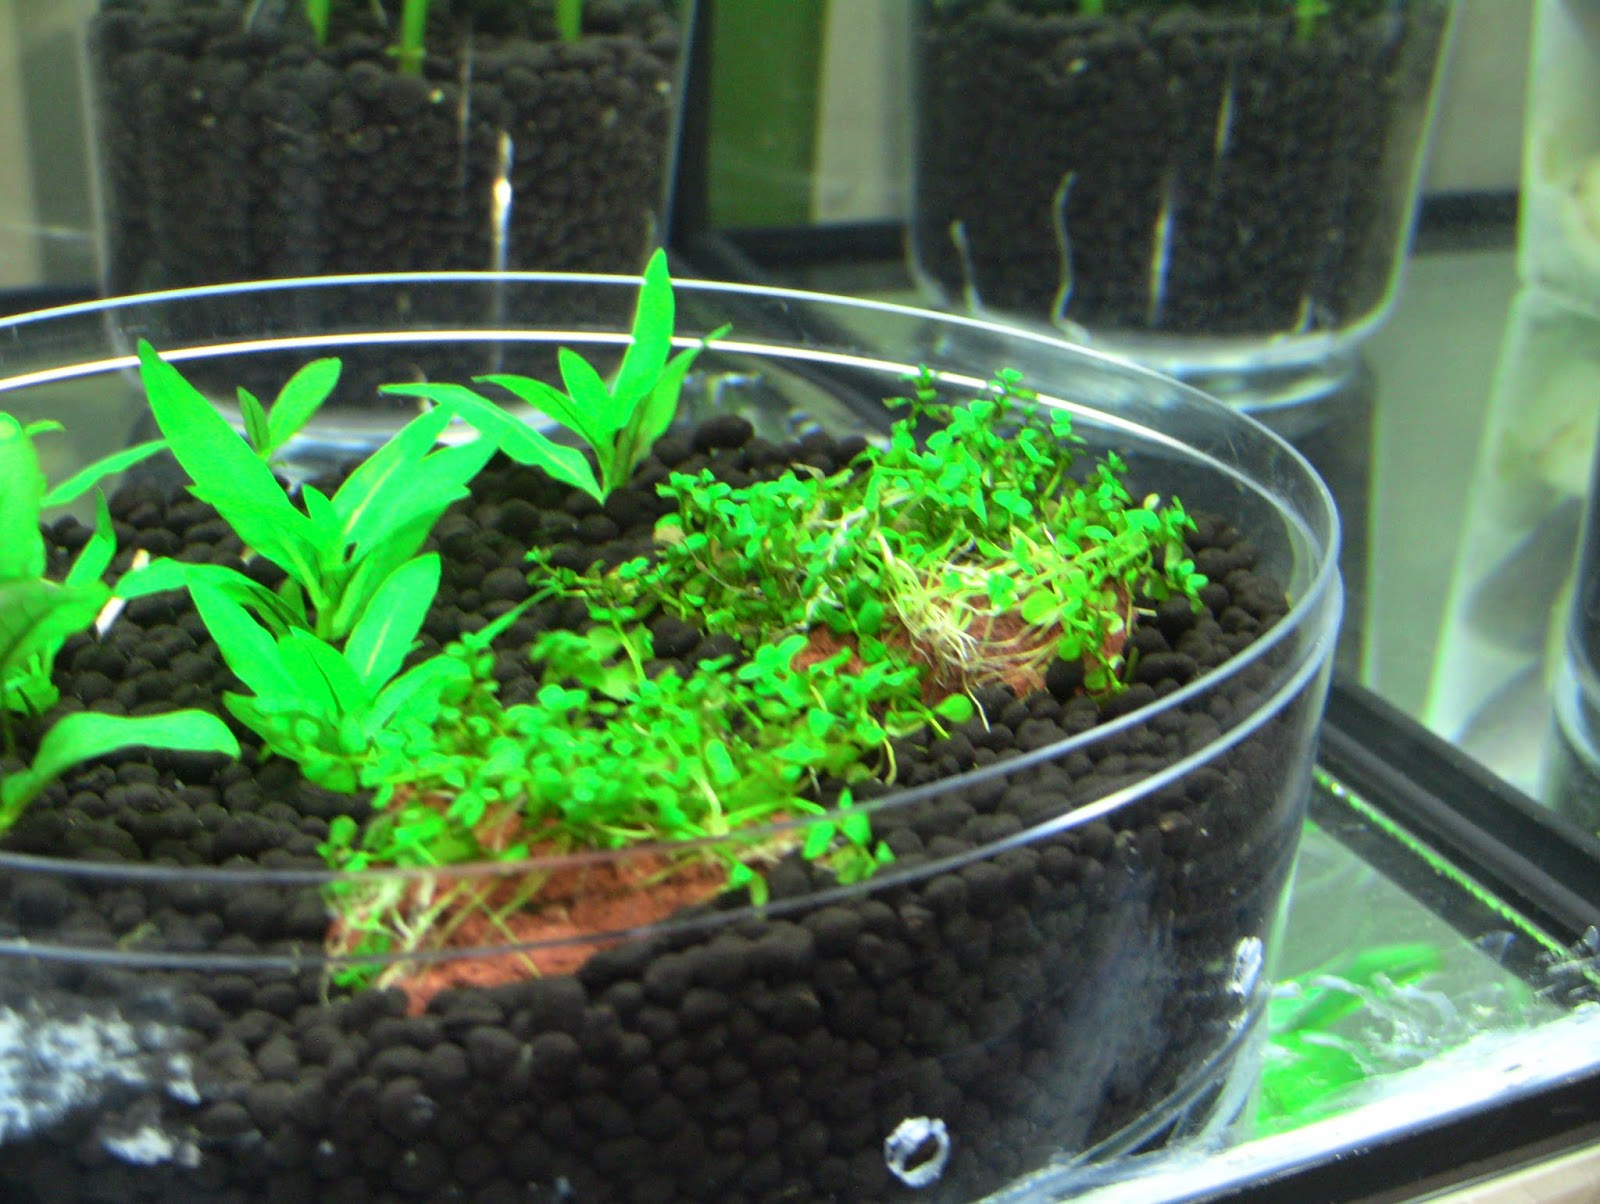 Staurogyne repens and monte carlo. These are also cuttings from main tank and I would like to see how they will thrive in a low-tech tank. & Fish Plants and Hamsters: November 2014